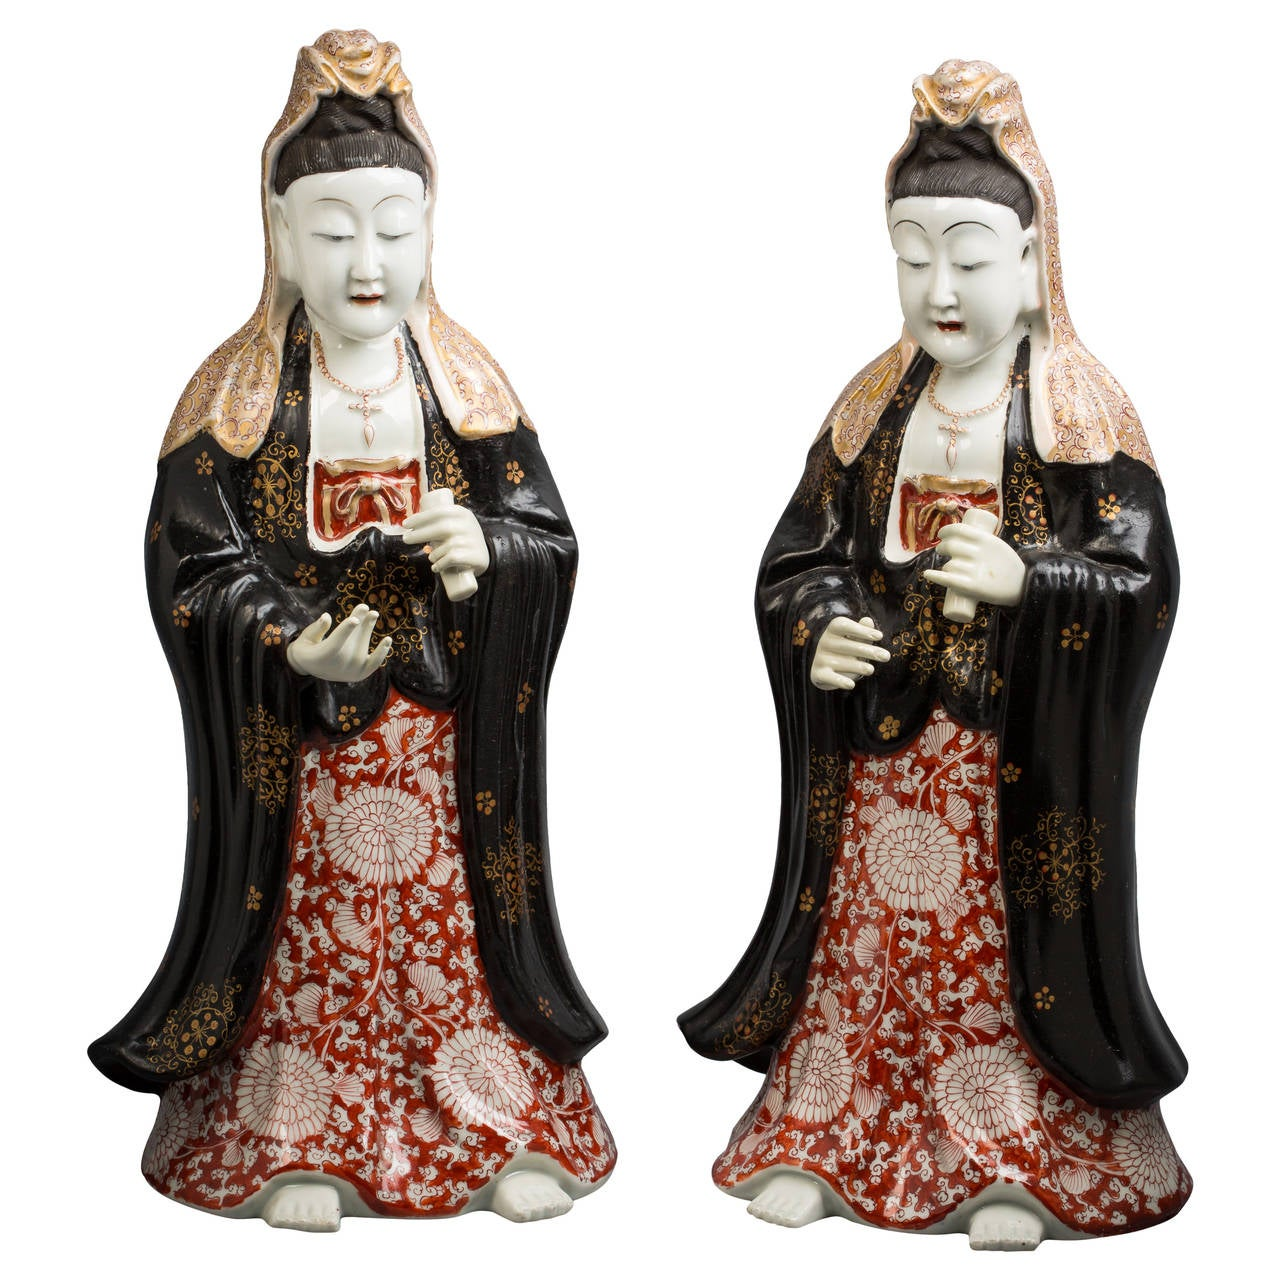 Pair of French Porcelain Chinoiserie Figures, circa 1840 For Sale